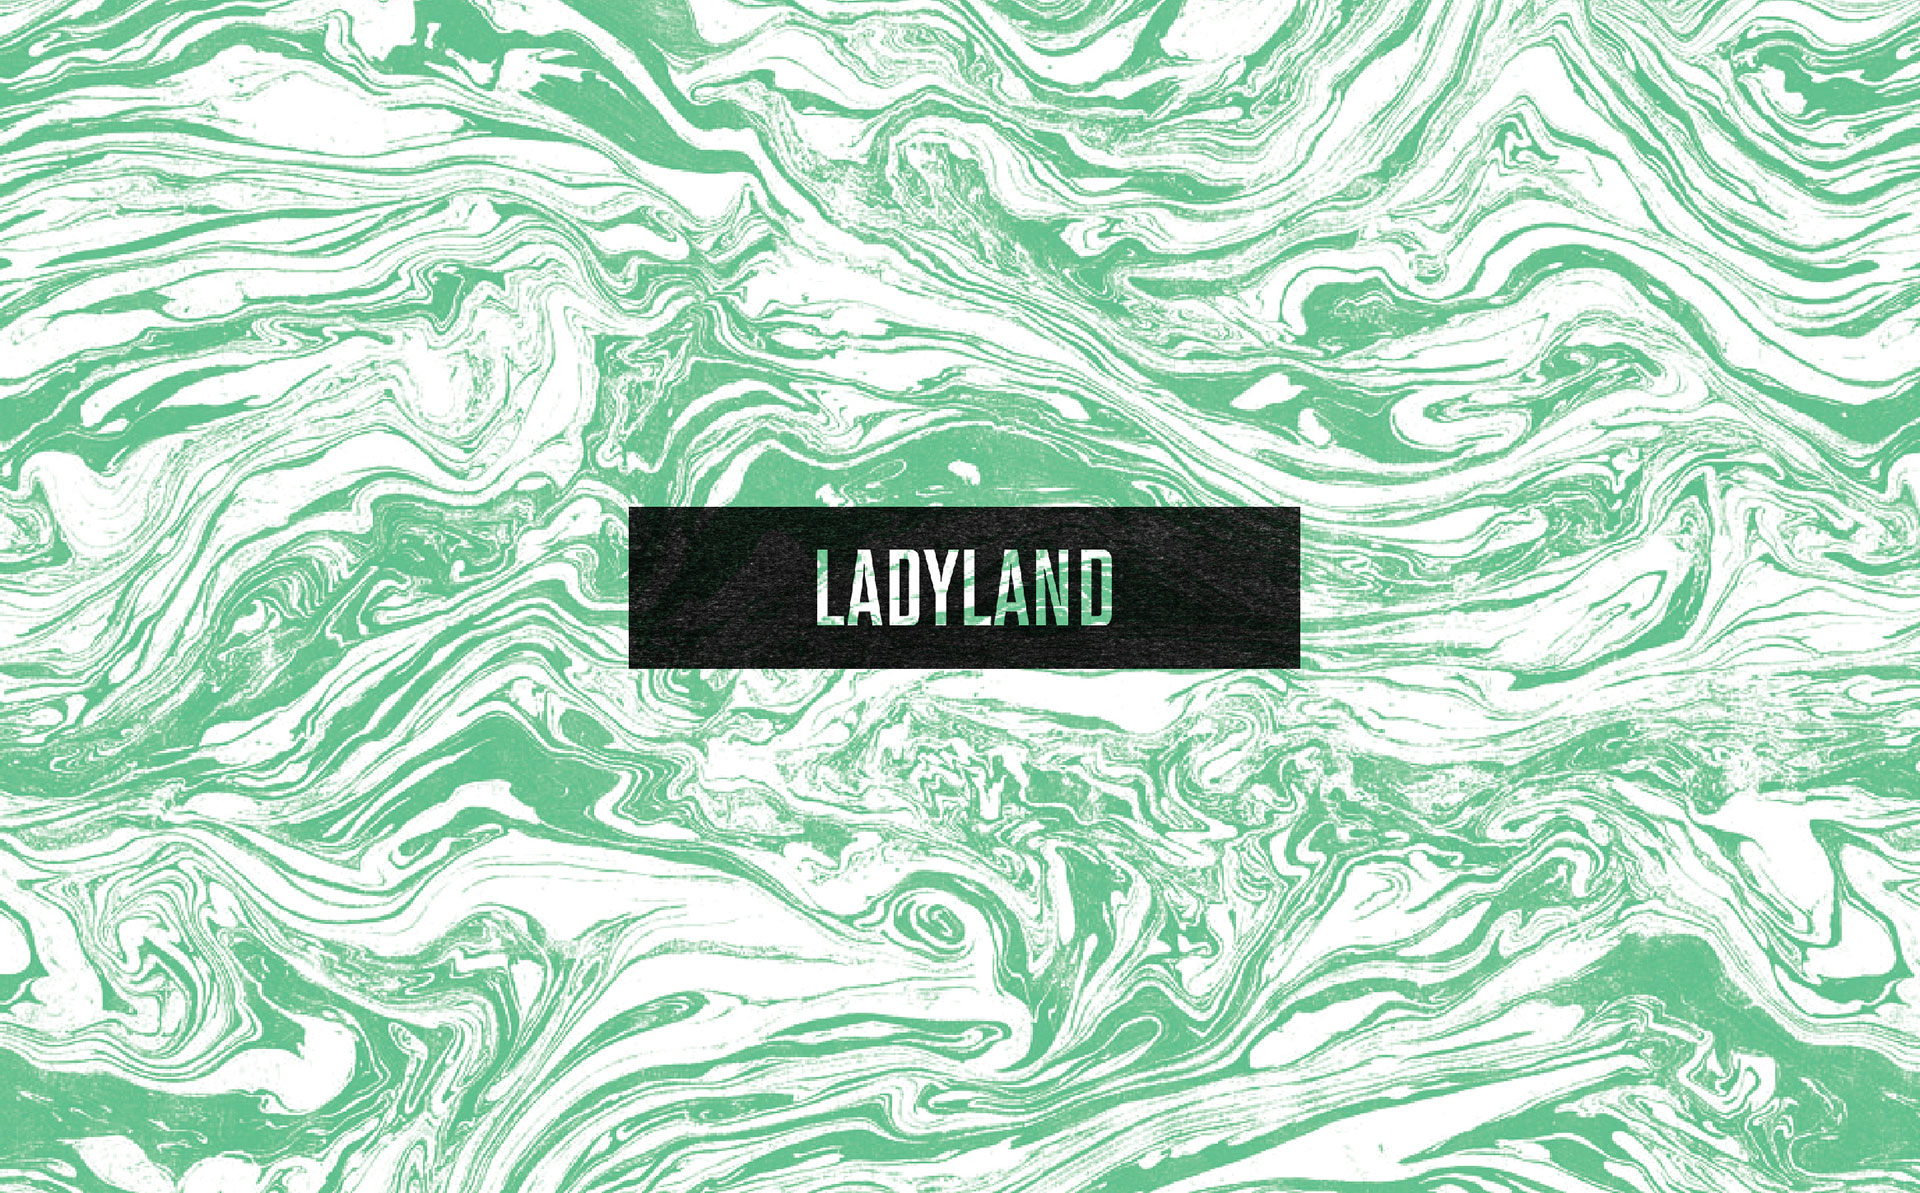 junction-single-project_ladyland_aw01-02